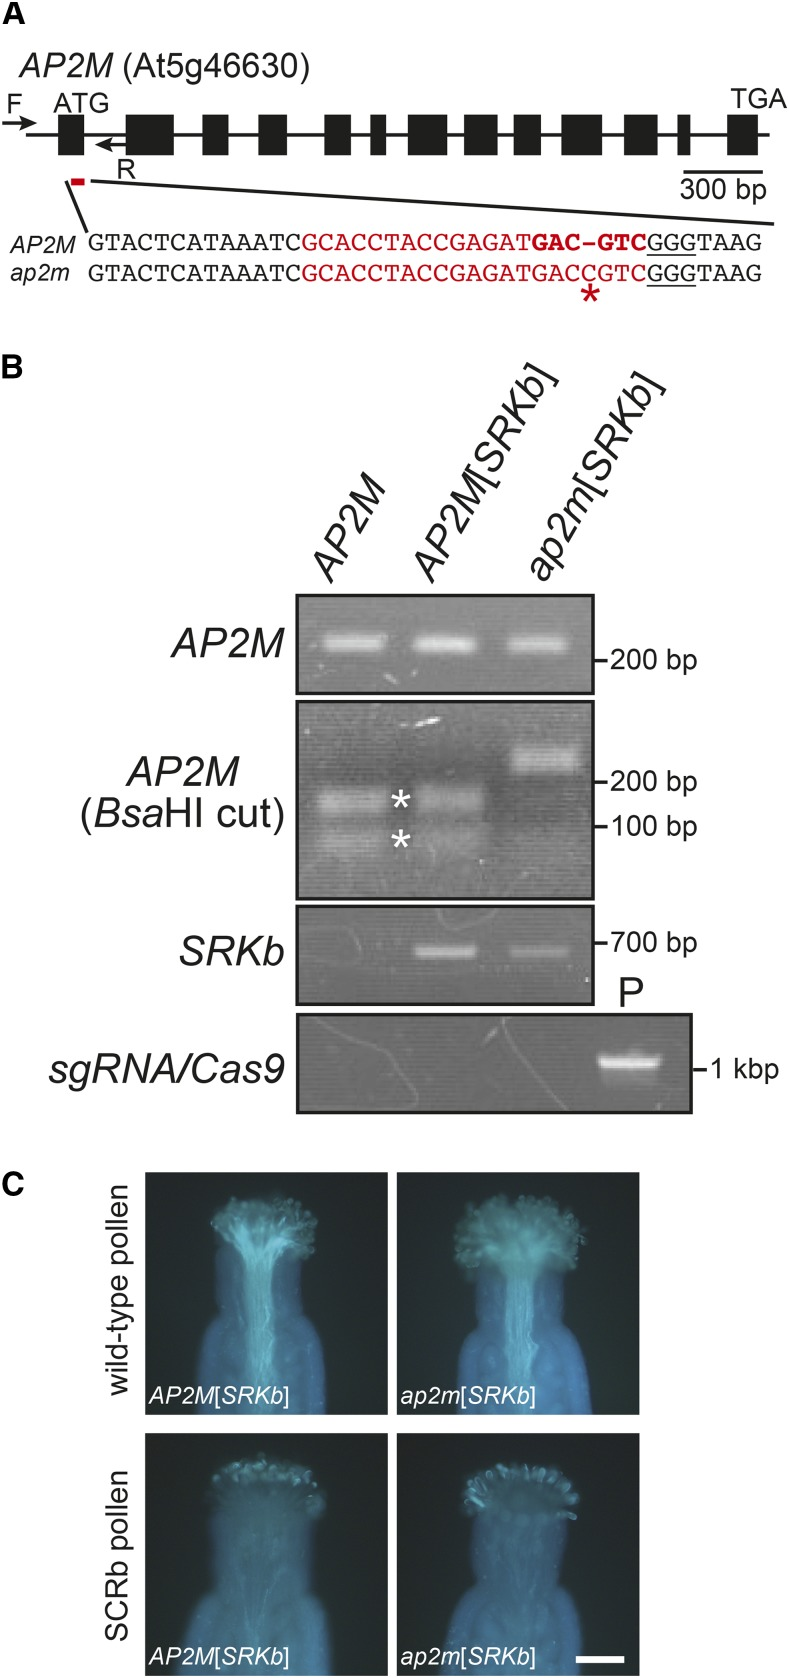 """A null ap2m mutation does not disrupt SRKb function and SI. (A) Structure of the AP2M gene and sequence of the CRISPR/Cas9 -targeted site. The AP2M gene structure is depicted with exons representing boxes and lines representing introns. Arrows represent annealing sites of the forward [F] and reverse [R] primers used for AP2M genotyping ( Figure 4B ) and the red line below the first exon shows the location of the targeted site. In the nucleotide sequences of the region containing the targeted site in wild-type ( AP2M ) and mutant ( ap2m ), the sequence of the sgRNA spacer is shown in red characters, the Protospacer Associated Motif (PAM) sequence GGG is underlined, and the Bsa HI restriction site is highlighted in bold red characters. The asterisk shows the cytosine insertion in ap2m that abolishes the BsaH1 restriction site. (B) Genotyping of AP2M , SRKb , and the CRISPR/Cas9 gene cassette in C24 untransformed wild-type C24 ( AP2M ), AP2M [ AtS1 pro :SRKb-FLAG+SCRb ] ( AP2M [ SRKb ]), and ap2m [ AtS1 pro :SRKb-FLAG+SCRb ] ( ap2m [ SRKb ]) plants. The AP2M PCR products (top panel) were digested with Bsa HI enzymes [ AP2M ( Bsa HI cut) panel]. The 162-bp and 81-bp digestion products are indicated by asterisks. Note that the AP2M fragments amplified from ap2m [ AtS1 pro AtS1 pro :SRKb-FLAG+SCRb ] DNA were not digested with Bsa HI. The presence of the AtS1 pro :SRKb-FLAG+SCRb transgenes was assessed by PCR with SRKb -specific primers ( SRKb panel), and the AP2MsgRNA-Cas9 gene cassette was detected by PCR using DNA of the AP2MsgRNA-Cas9 transformation plasmid as positive control (""""P"""" lane in the sgRNA-Cas9 panel). (C) Pollination phenotypes of ap2m [ AtS1 pro :SRKb-FLAG+SCRb] ( ap2m [ SRKb ]) mutant plants and AP2M [ AtS1 pro :SRKb-FLAG+SCRb ] ( AP2M [ SRKb ]) control plants. The images show the pollination responses toward pollen from untransformed wild-type C24 plants (upper panel) and SCRb pollen (lower panel). The genotype of stigmas used for pollination is indicated"""